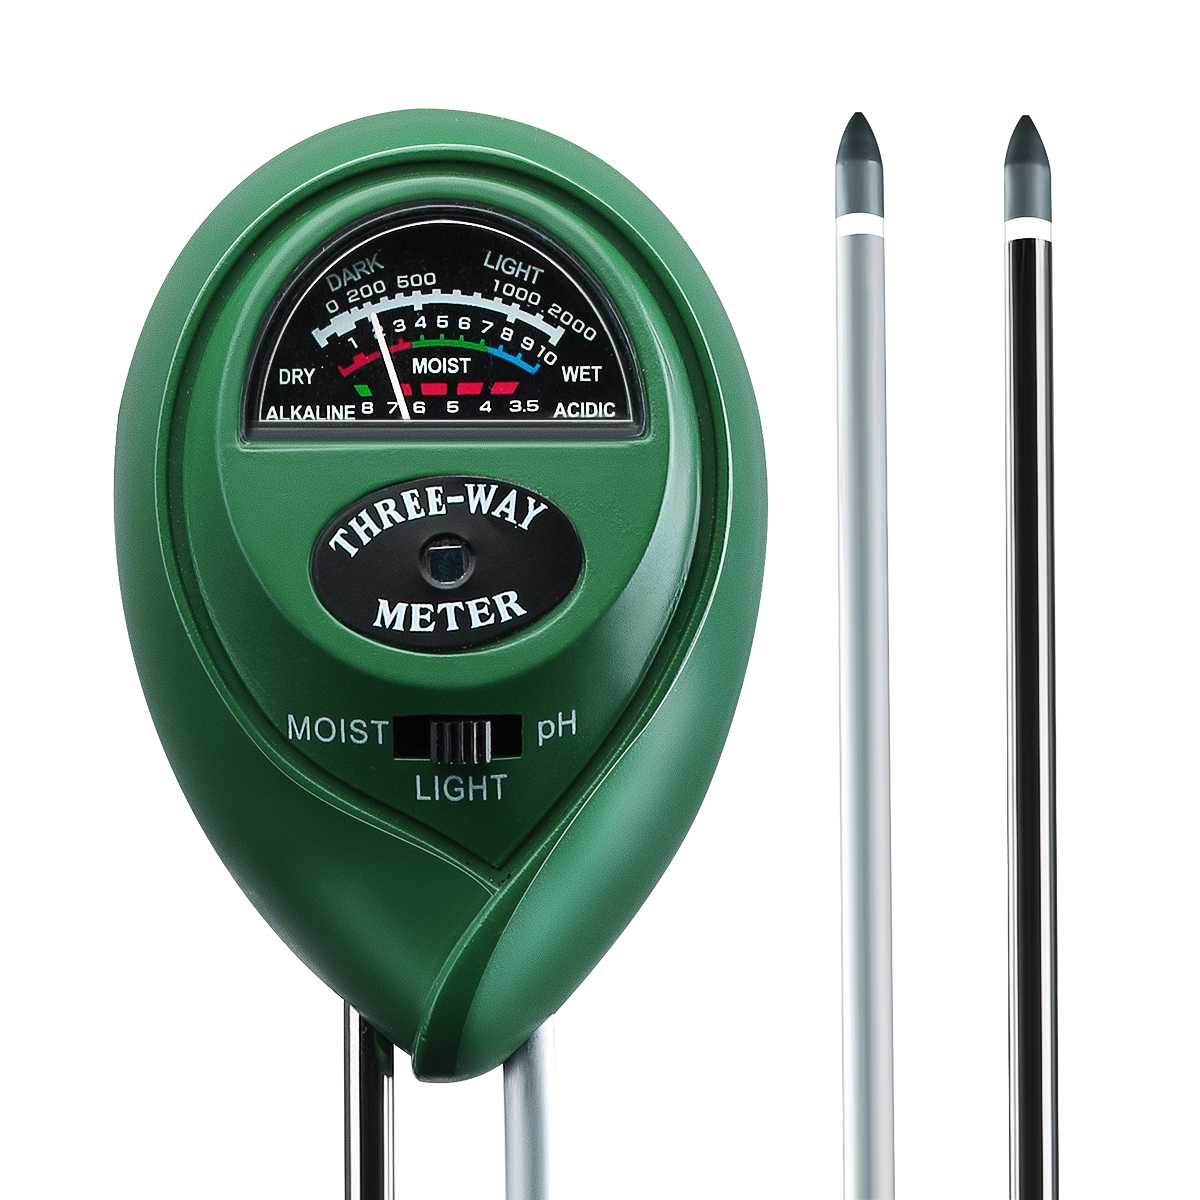 VicTsing 3-in-1 Soil pH and Moisture, Light Intensity Meter Plant Tester for Gardening, Plants Growth, Lawn Care( No Battery Required,1 Pack)